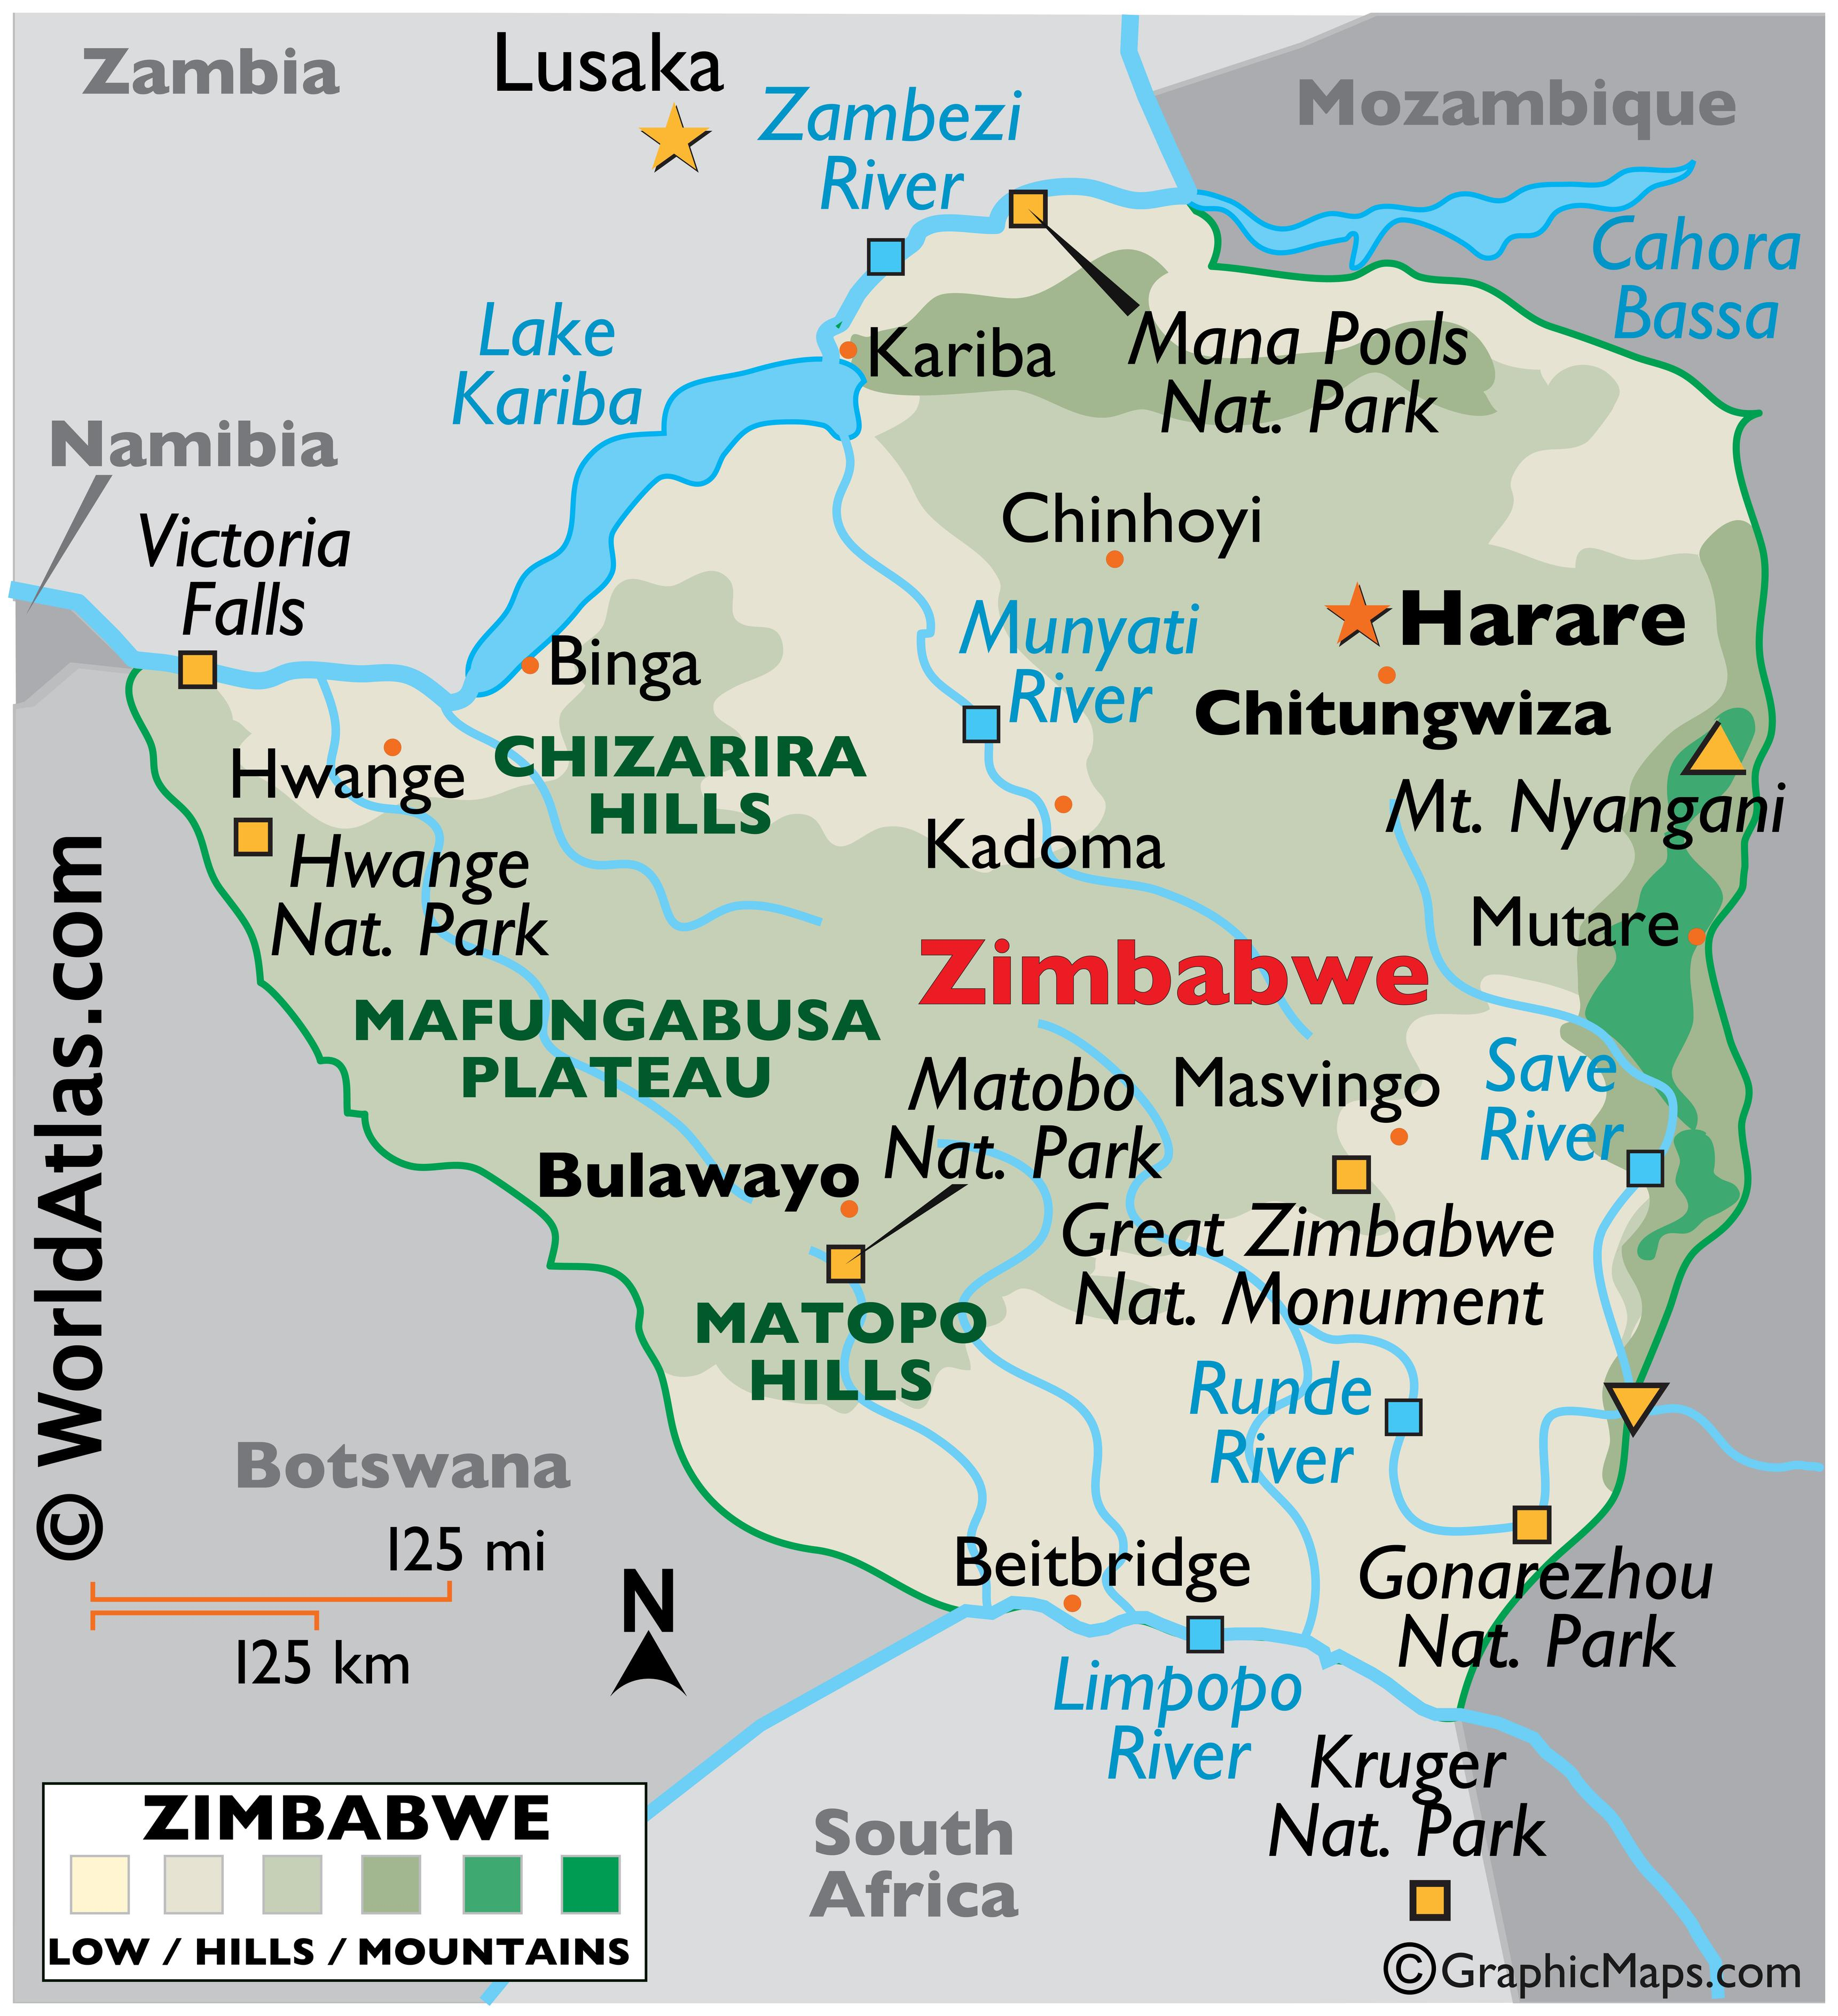 Physical Map of Zimbabwe showing the physical features of the country including mountain ranges, rivers, major lakes, and important protected areas.